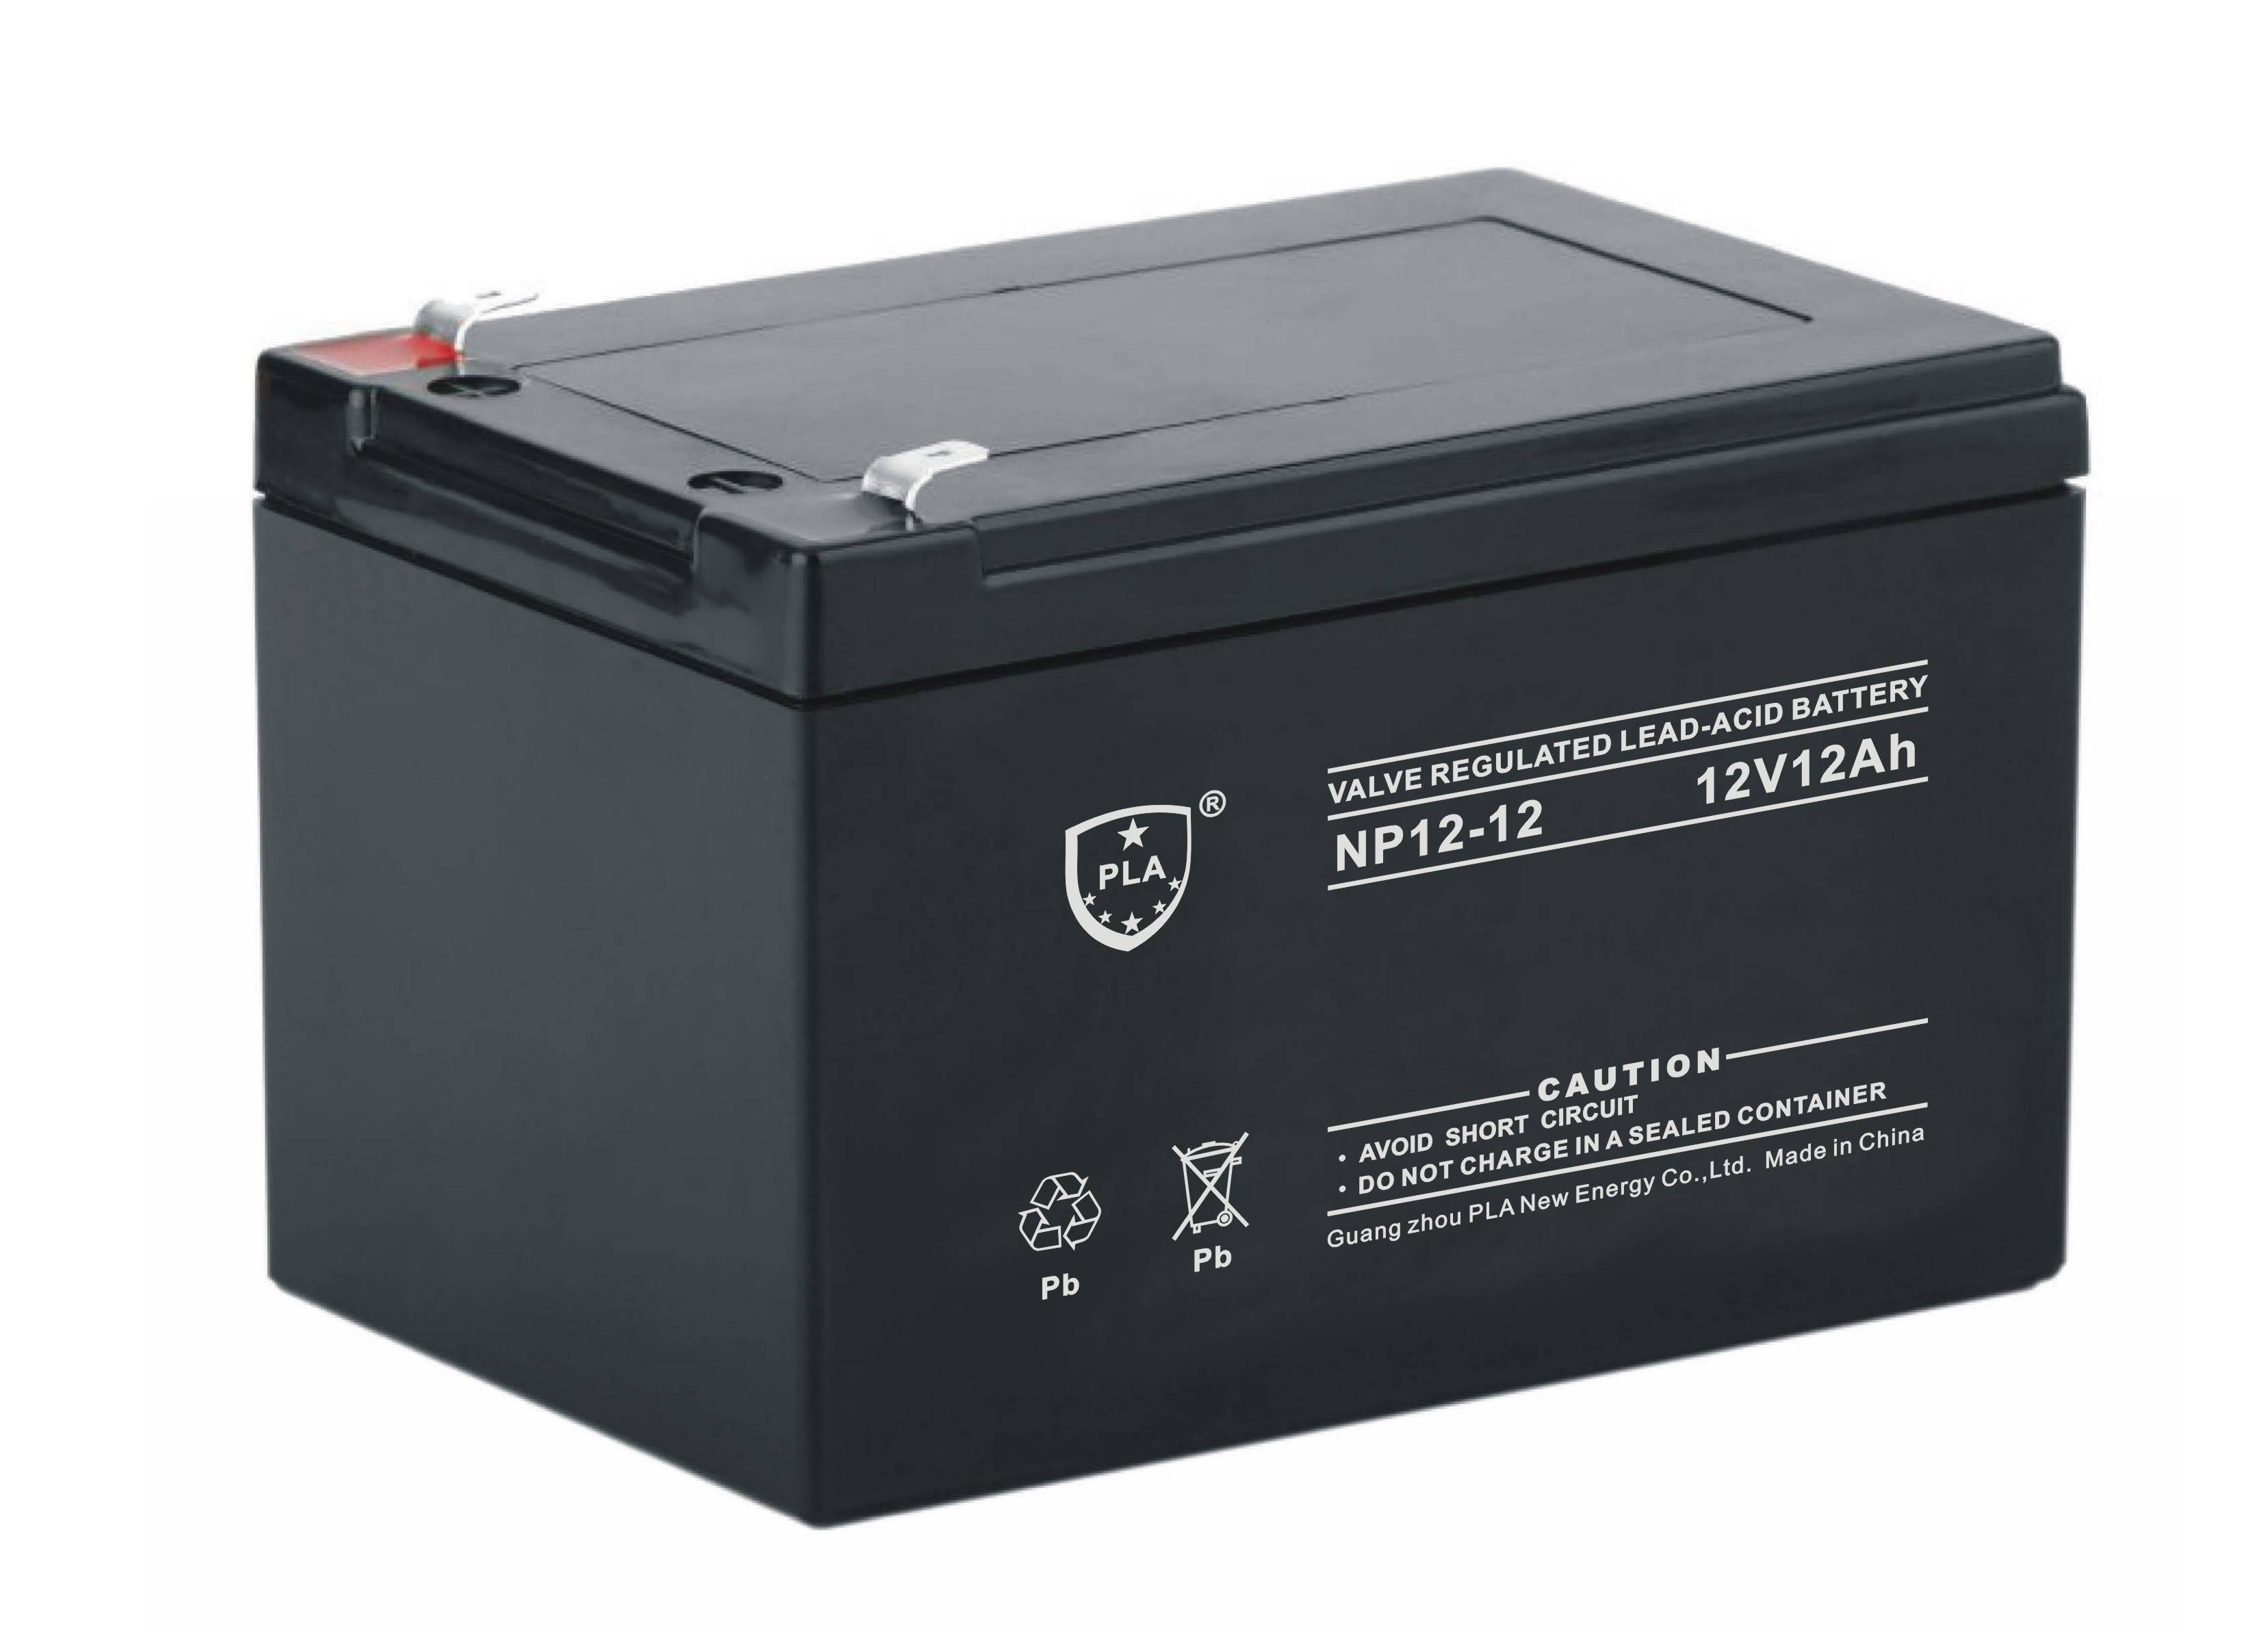 12V12Ah Deep Cycle Lead Acid Battery For UPS